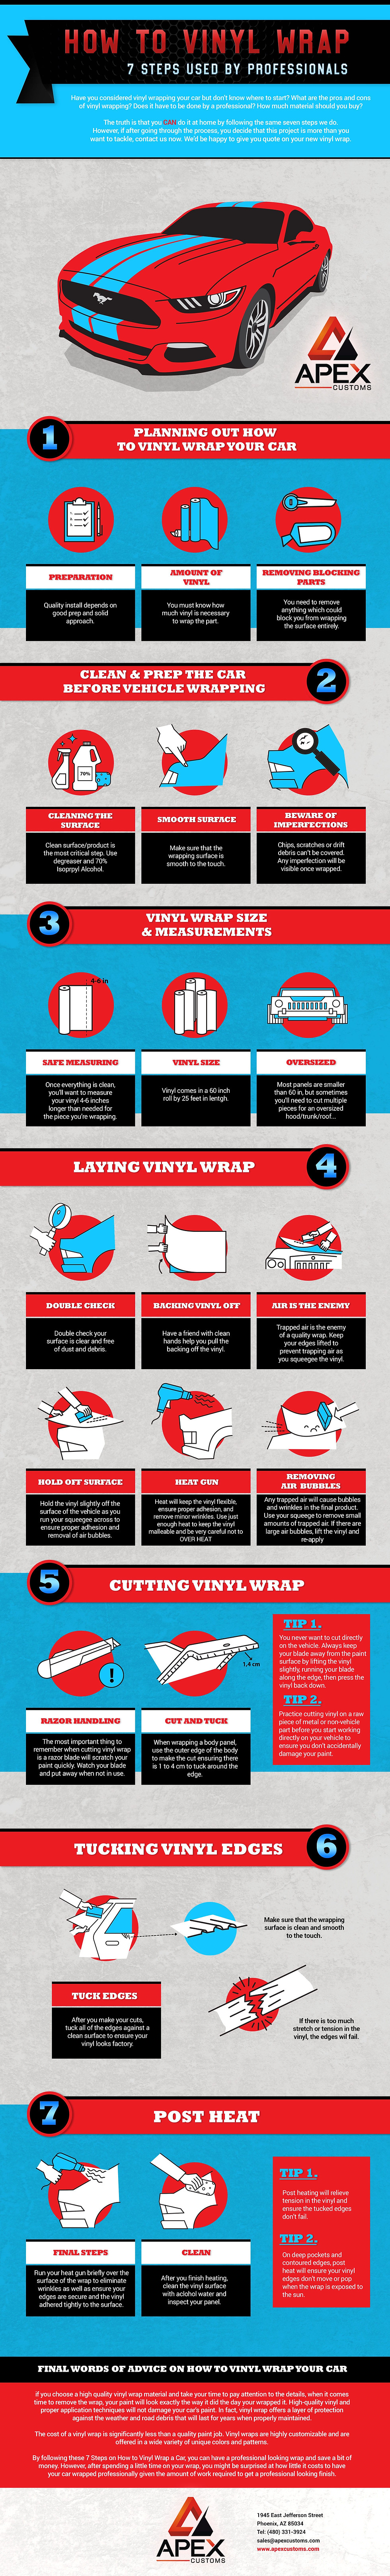 How to Vinyl Wrap 7 Steps Used By Professionals Infographic